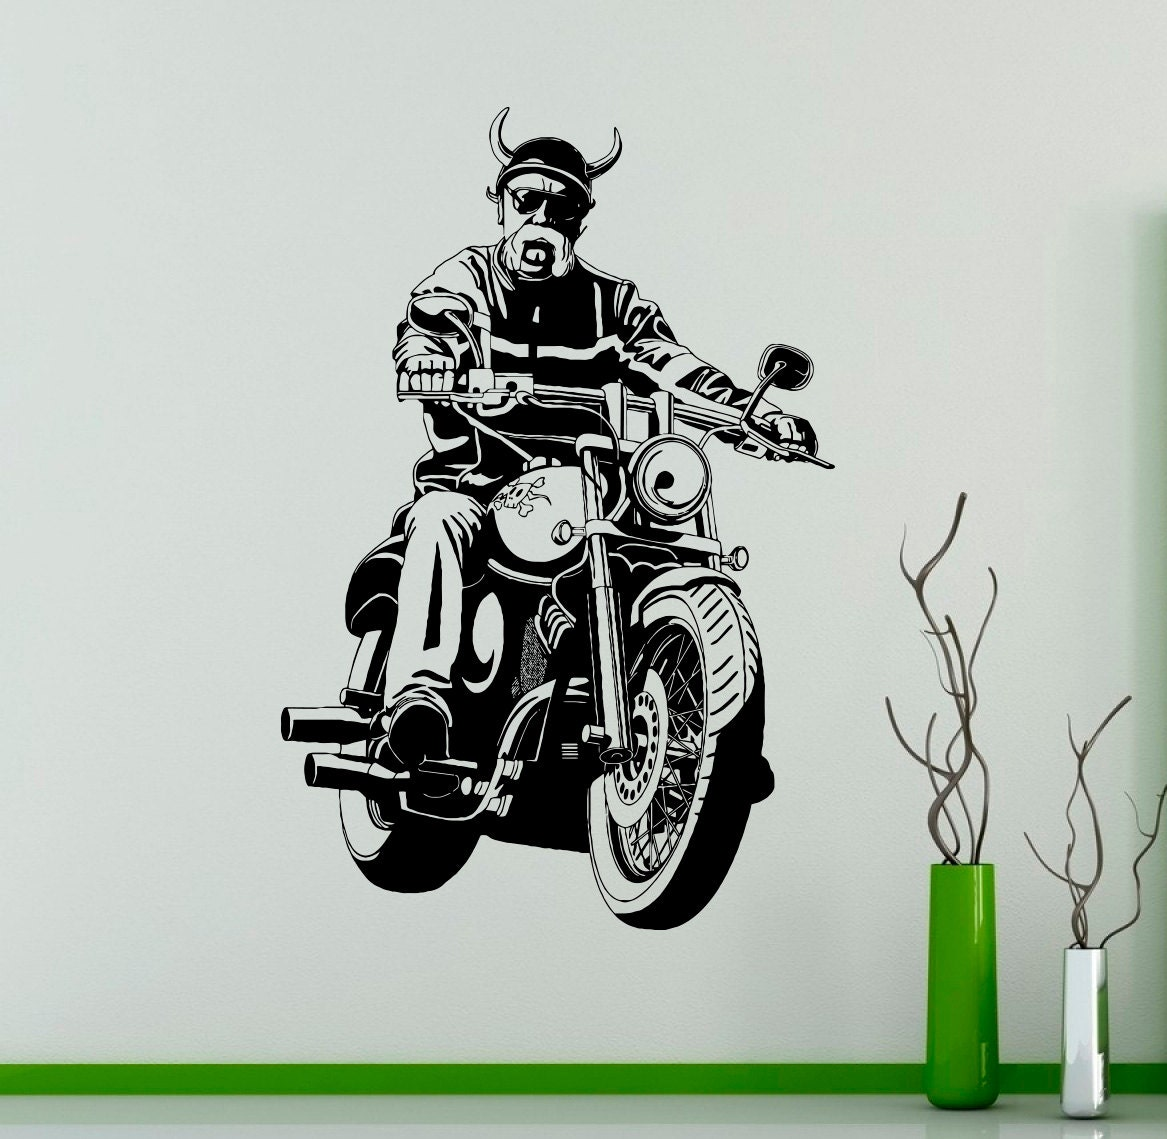 Brutal biker wall vinyl decal chopper motorbike wall sticker etsy